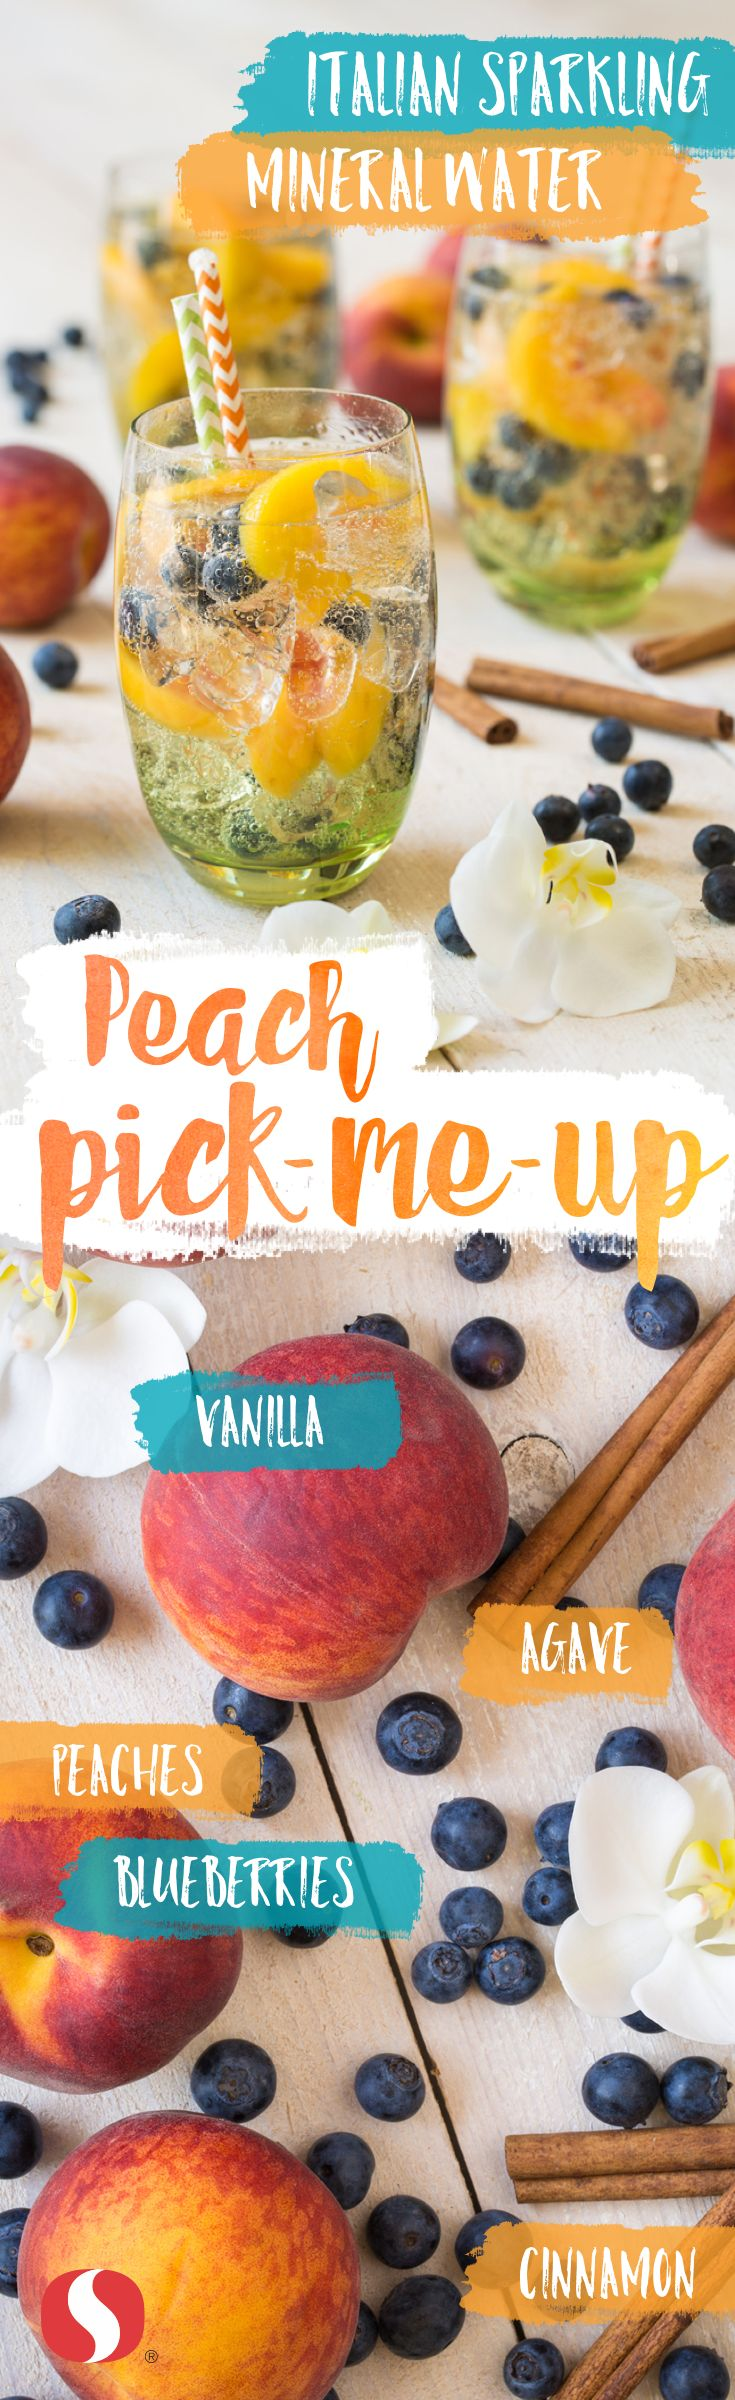 Summer never tasted so sweet! Make this Peach Pick-Me-Up for your next backyard bash. Your guests will love it!